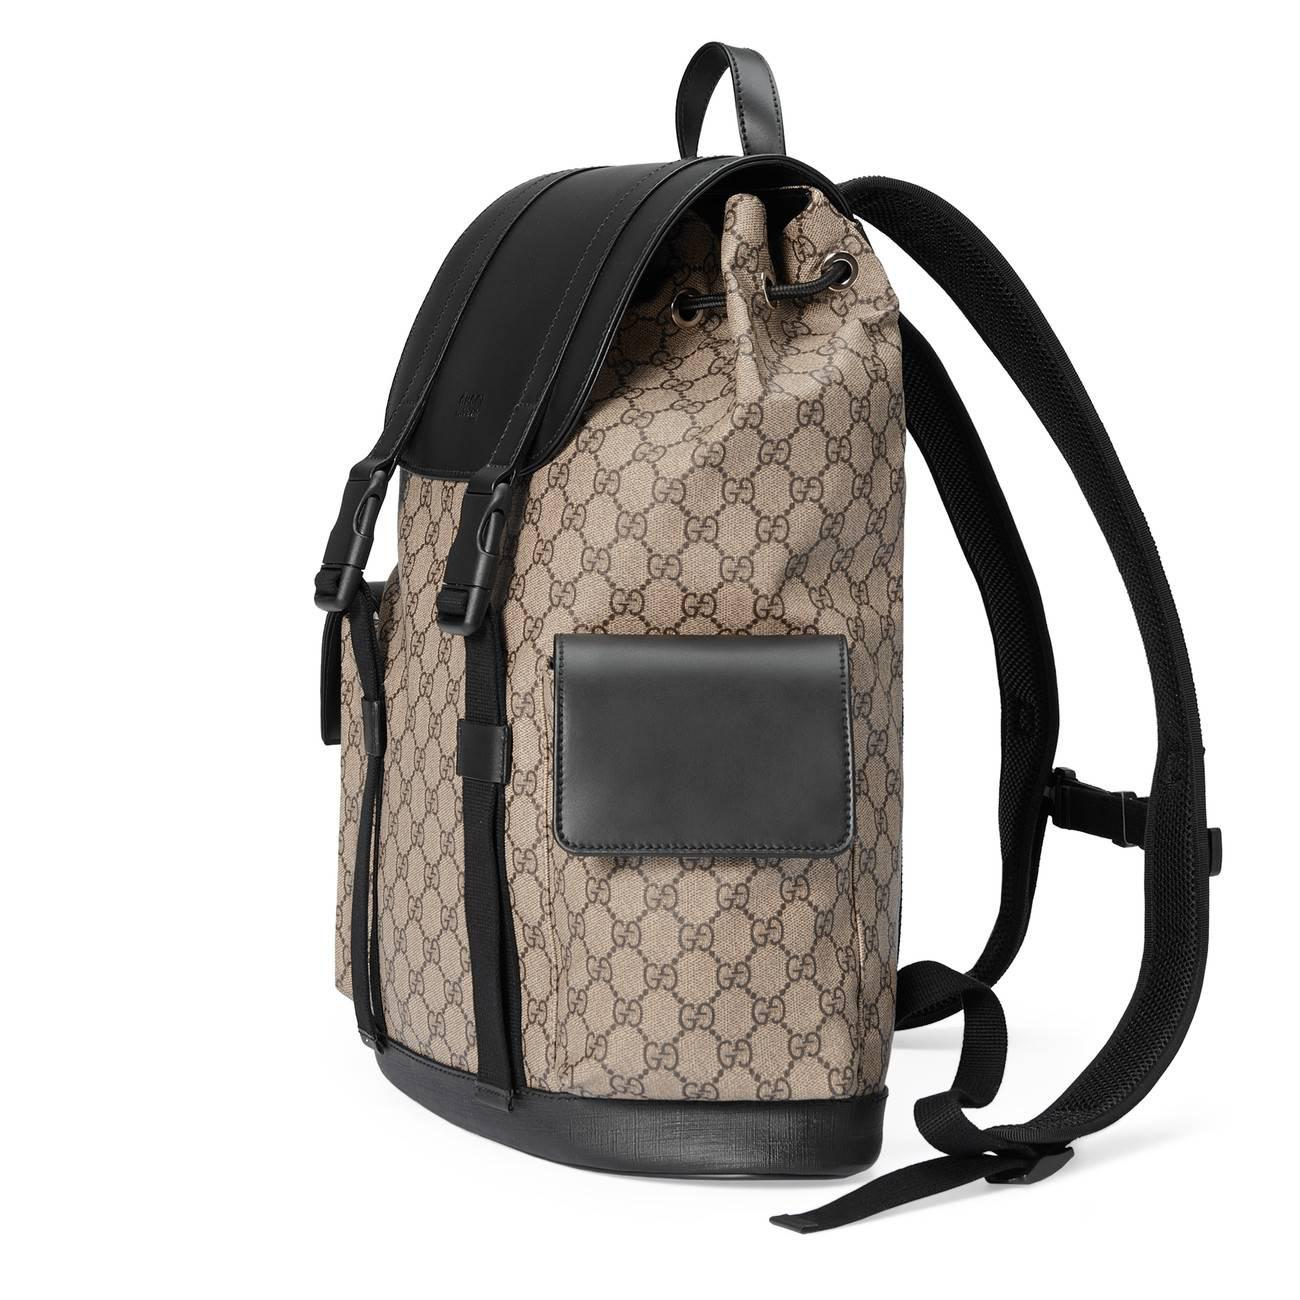 ad2635197a9b Gucci - Natural Soft GG Supreme Backpack for Men - Lyst. View fullscreen